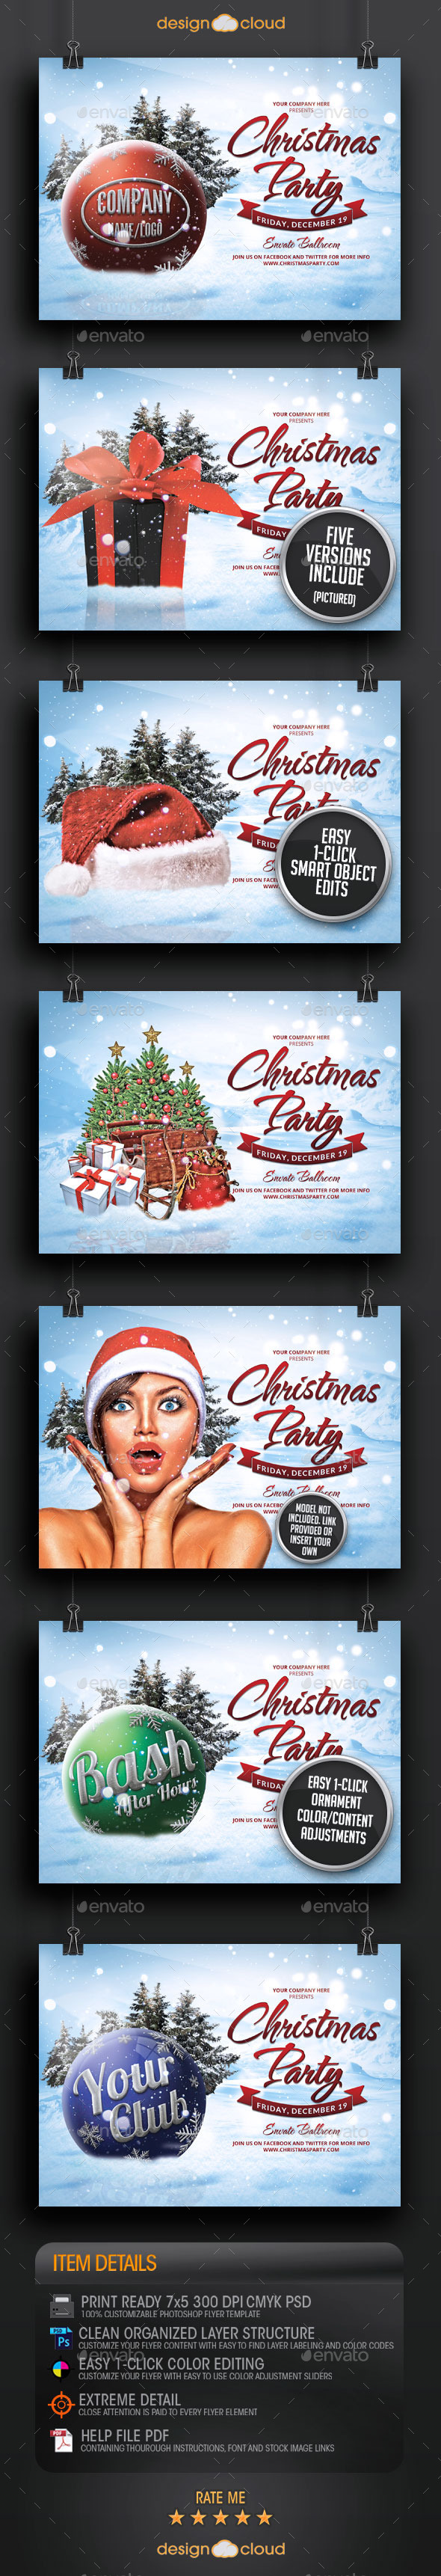 GraphicRiver Christmas Party and Event All Purpose Flyer 9423615